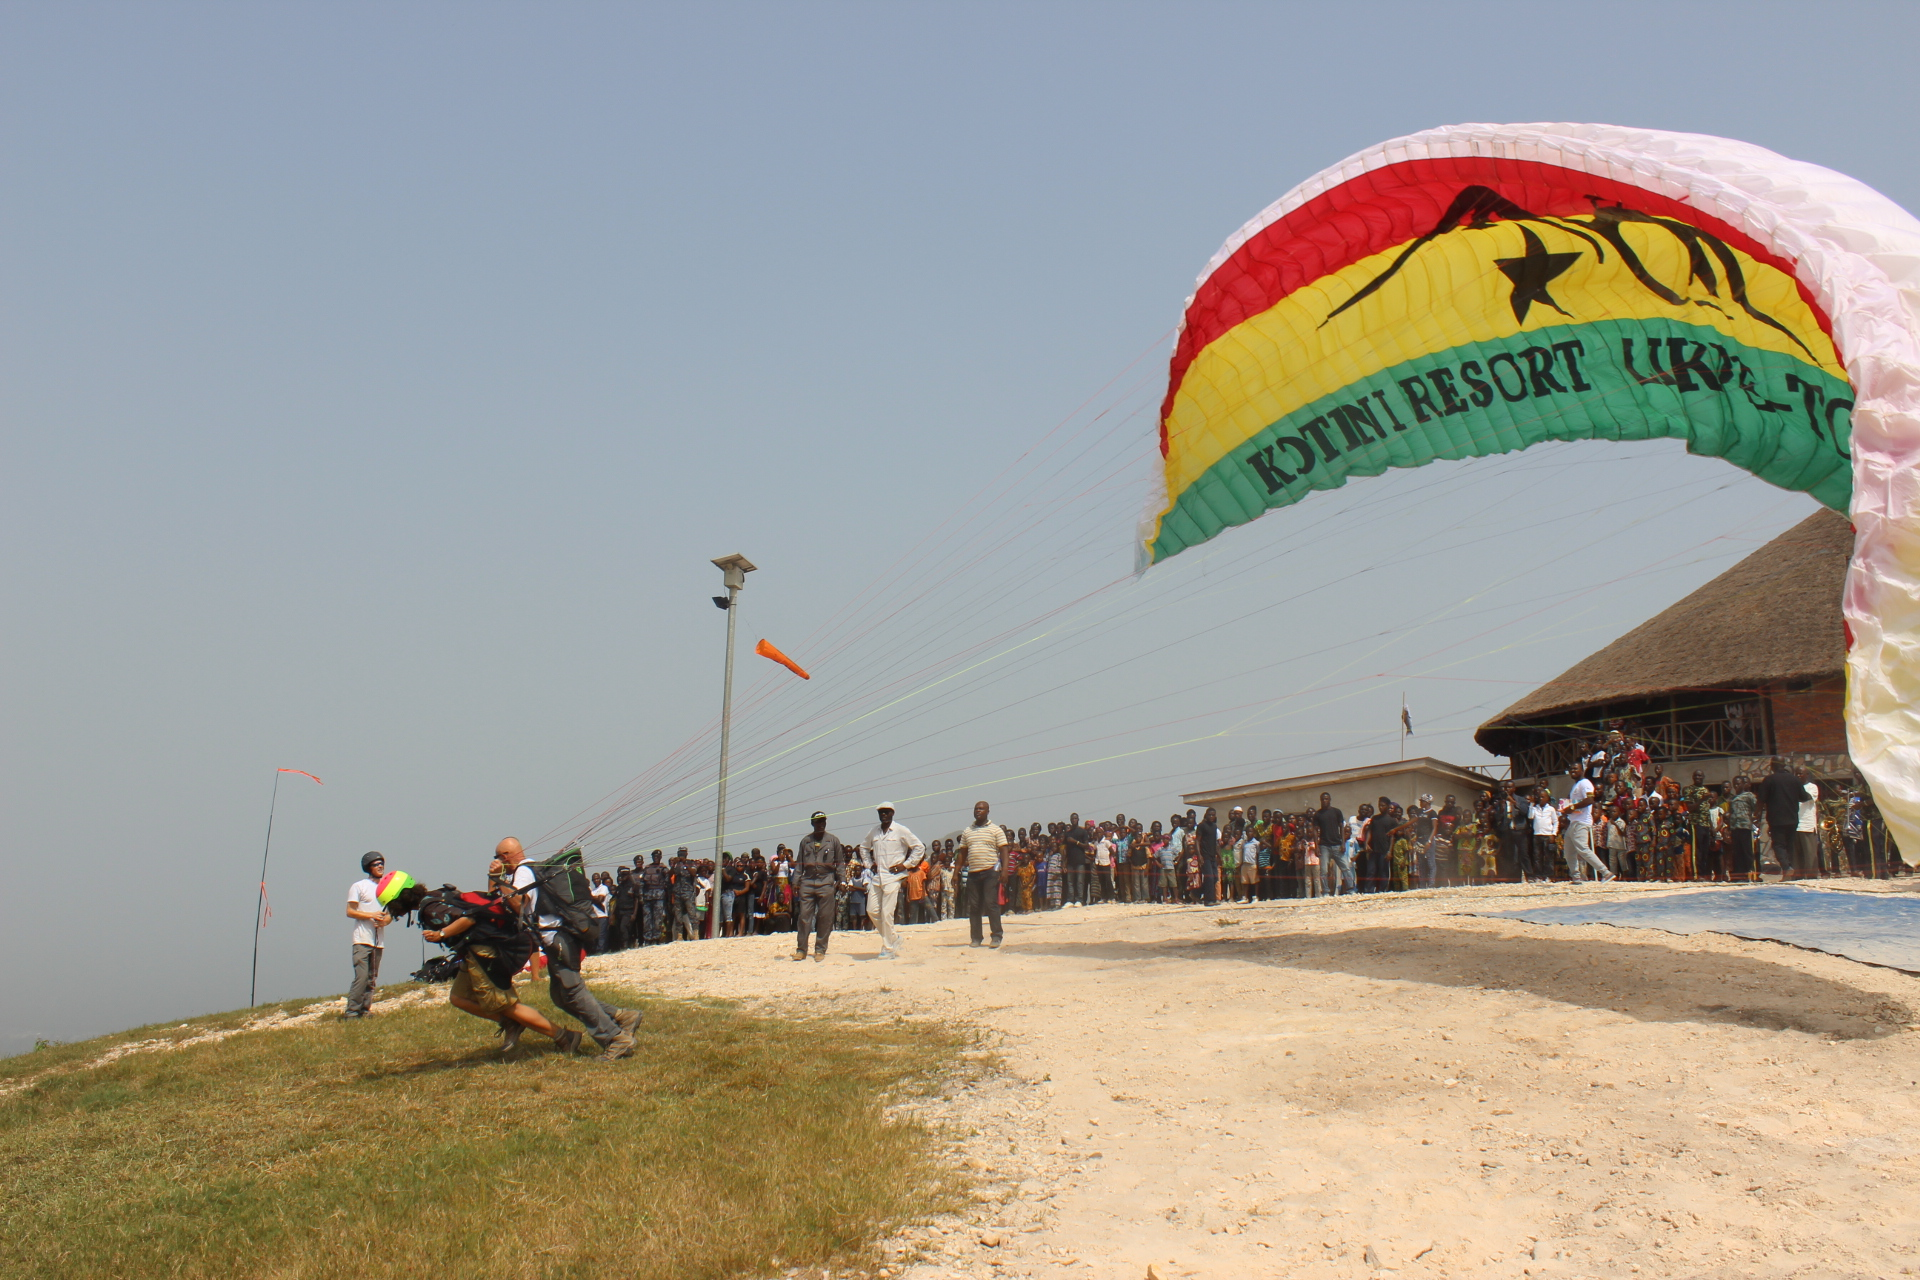 Likpe launches paragliding